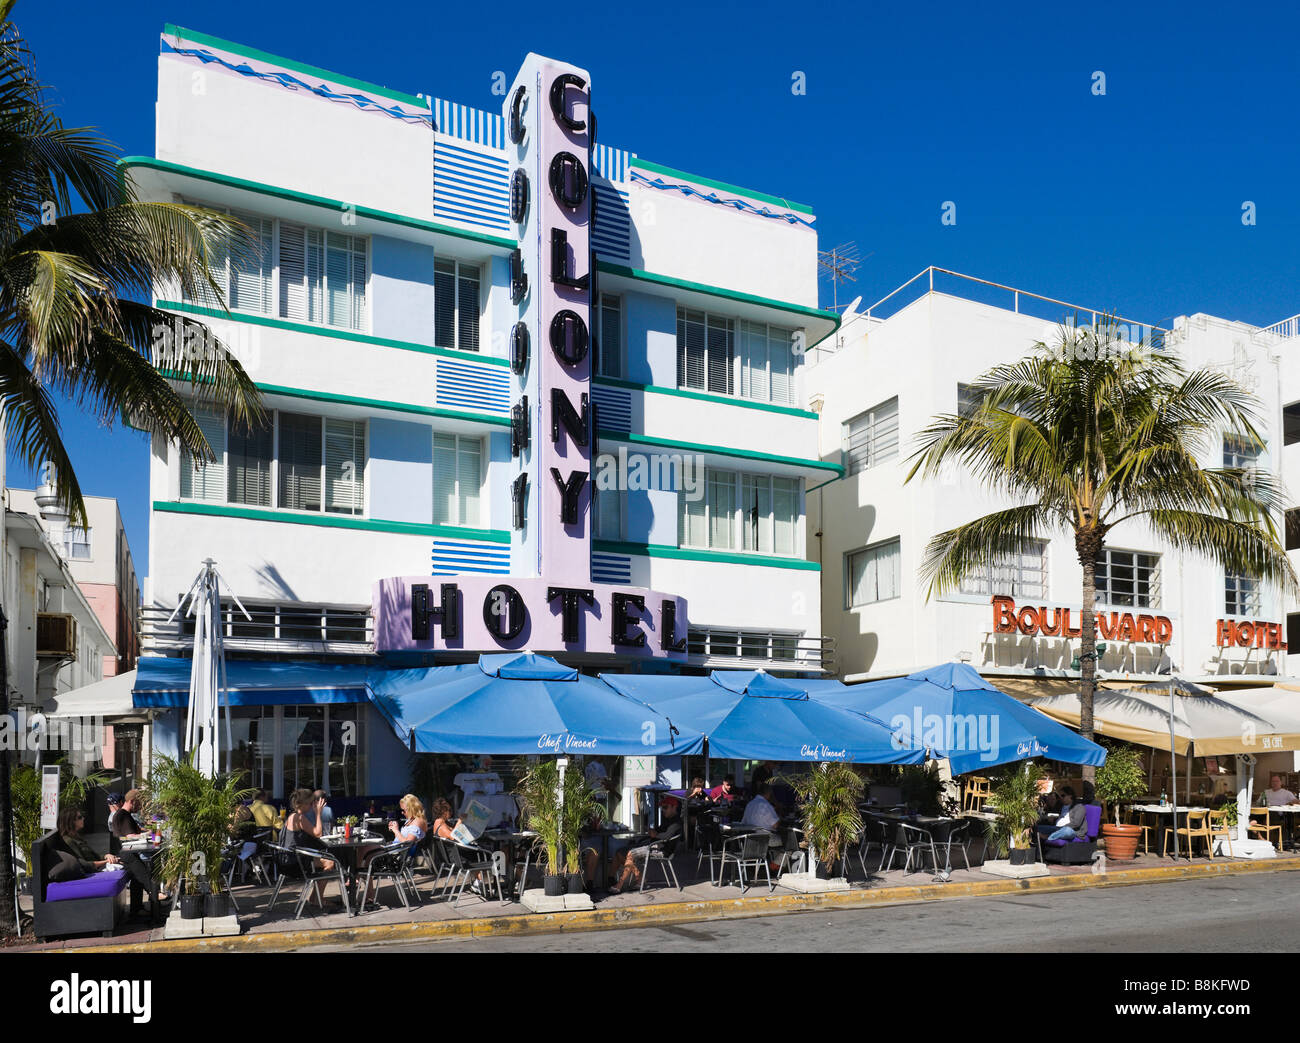 Art deco hotels on Ocean Drive, South Beach, Miami Beach, Gold Coast, Florida, USA - Stock Image